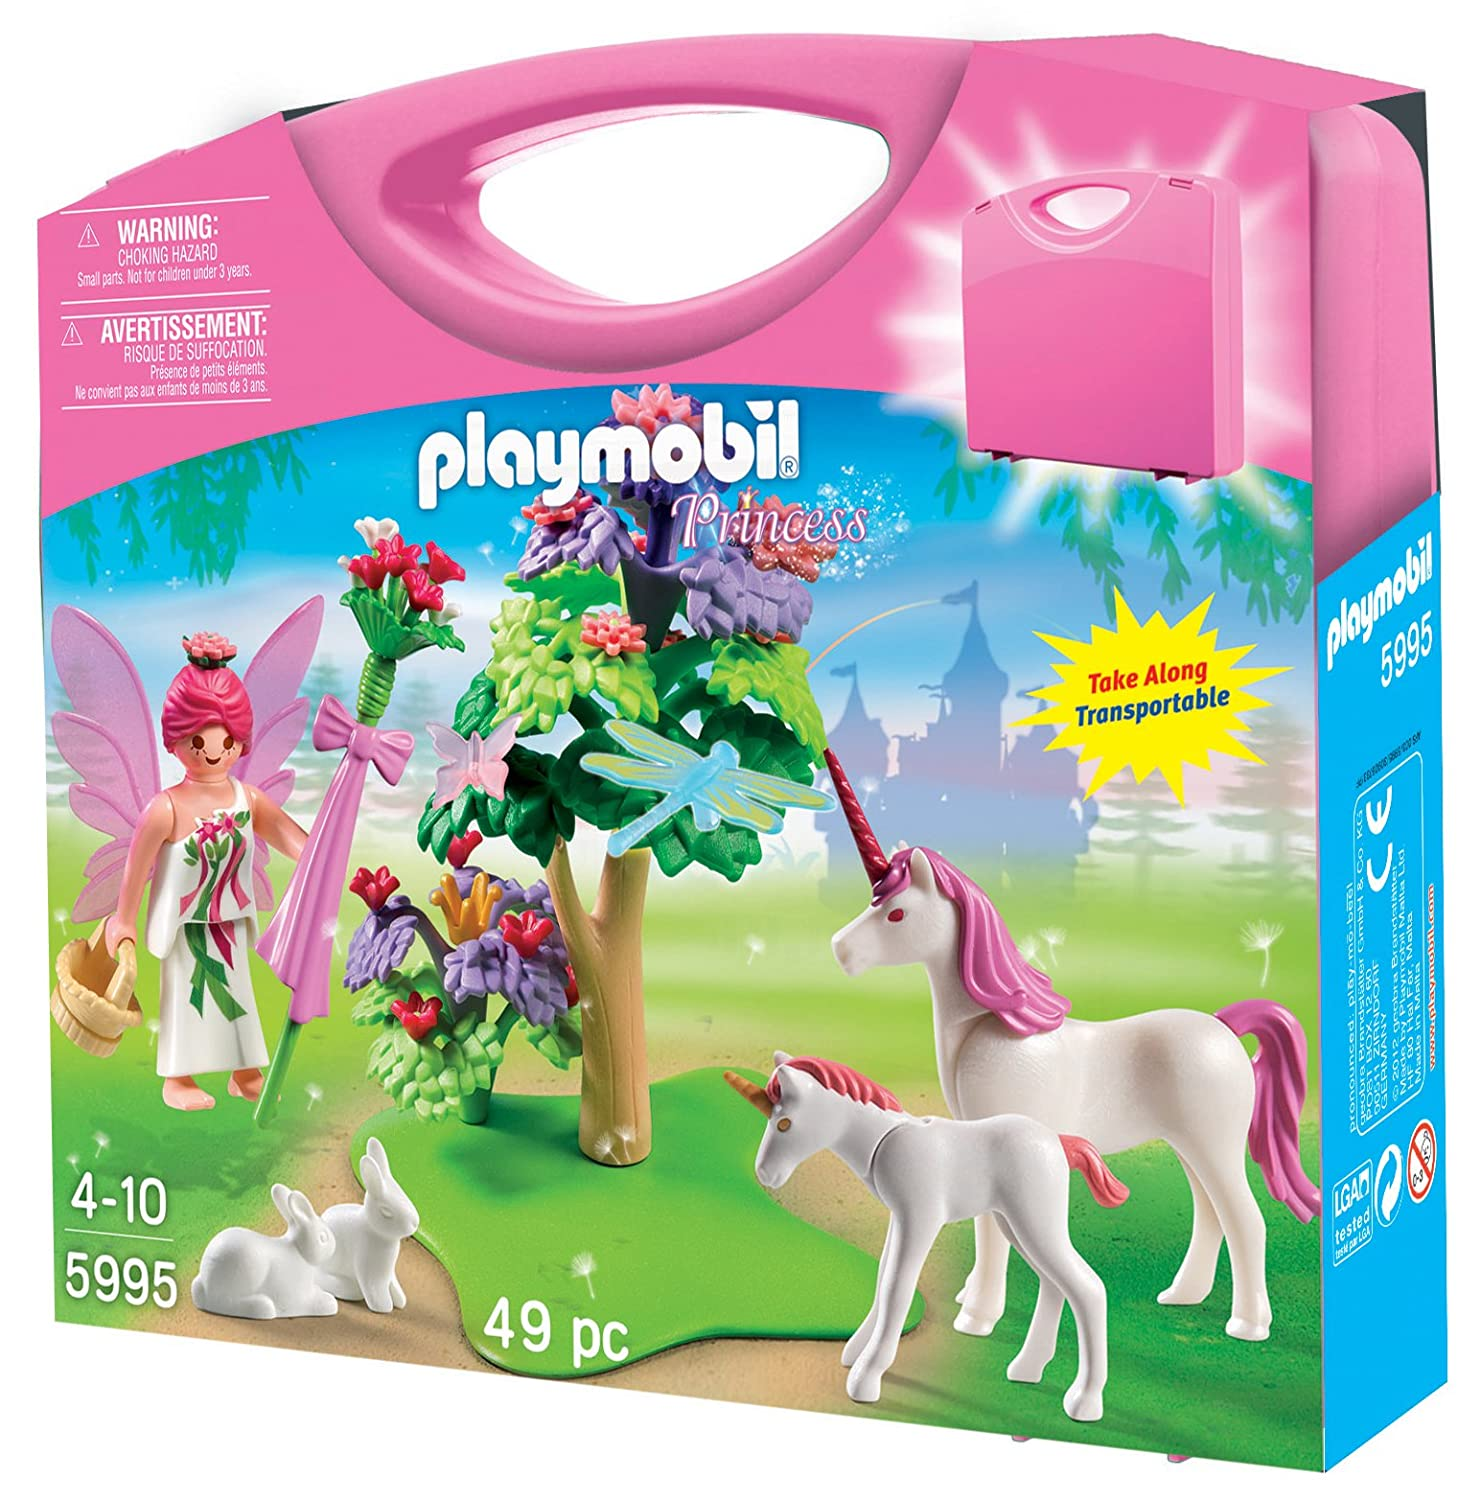 playmobil carrying case fairy building sets amazon canada - Play Mobile Fille